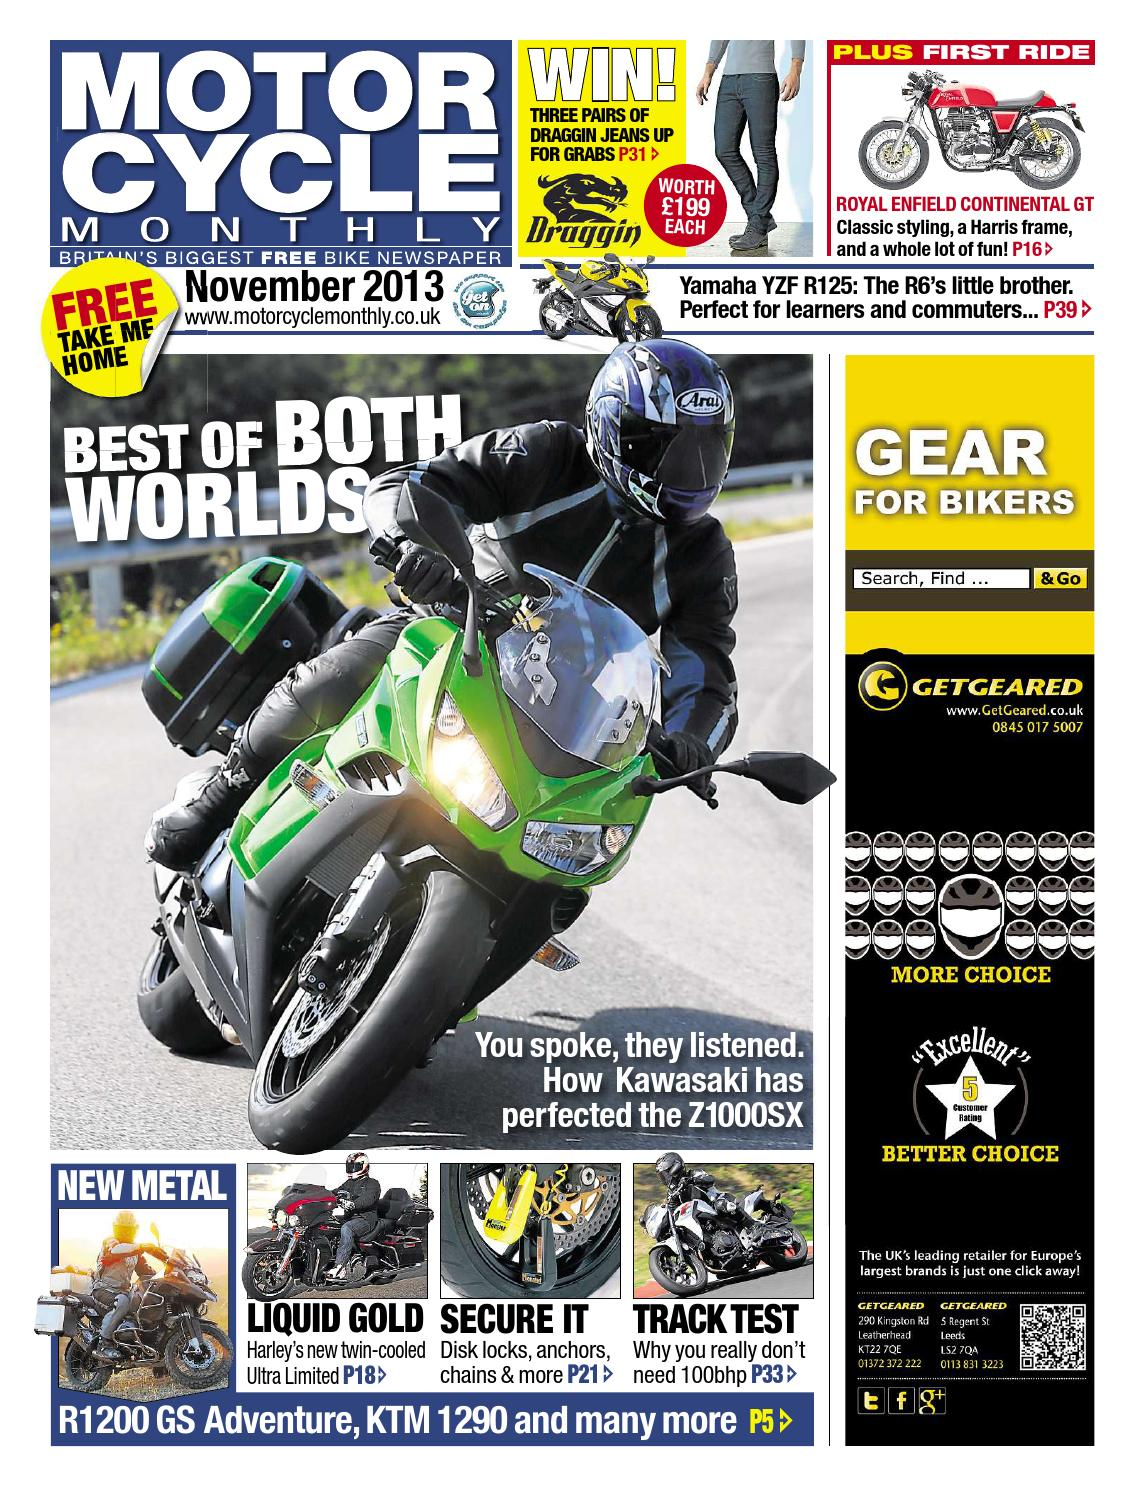 Motor Cycle Monthly November 2013 Full Edition By Mortons Media Yamaha Fzr400 Digital Ignition Control System Group Ltd Issuu